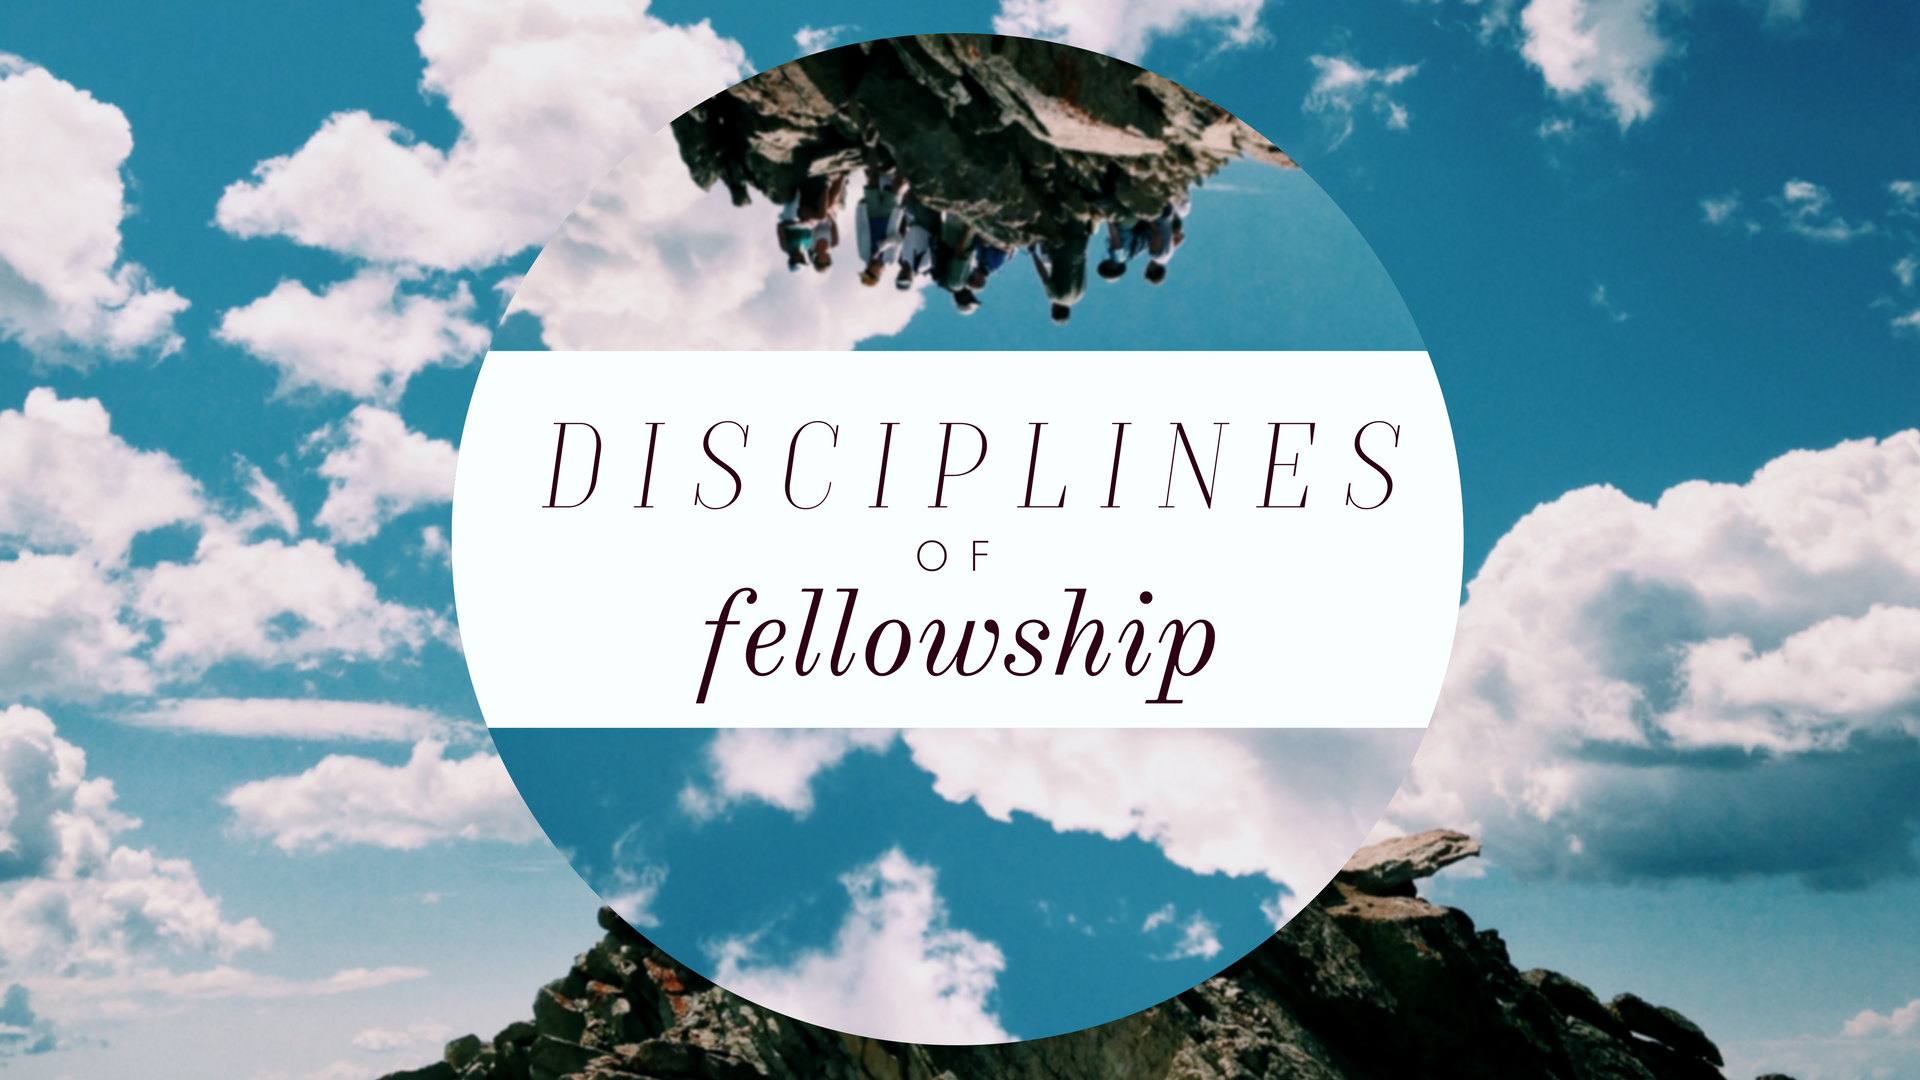 Disciplines of Fellowship Sermon Graphic no text.png